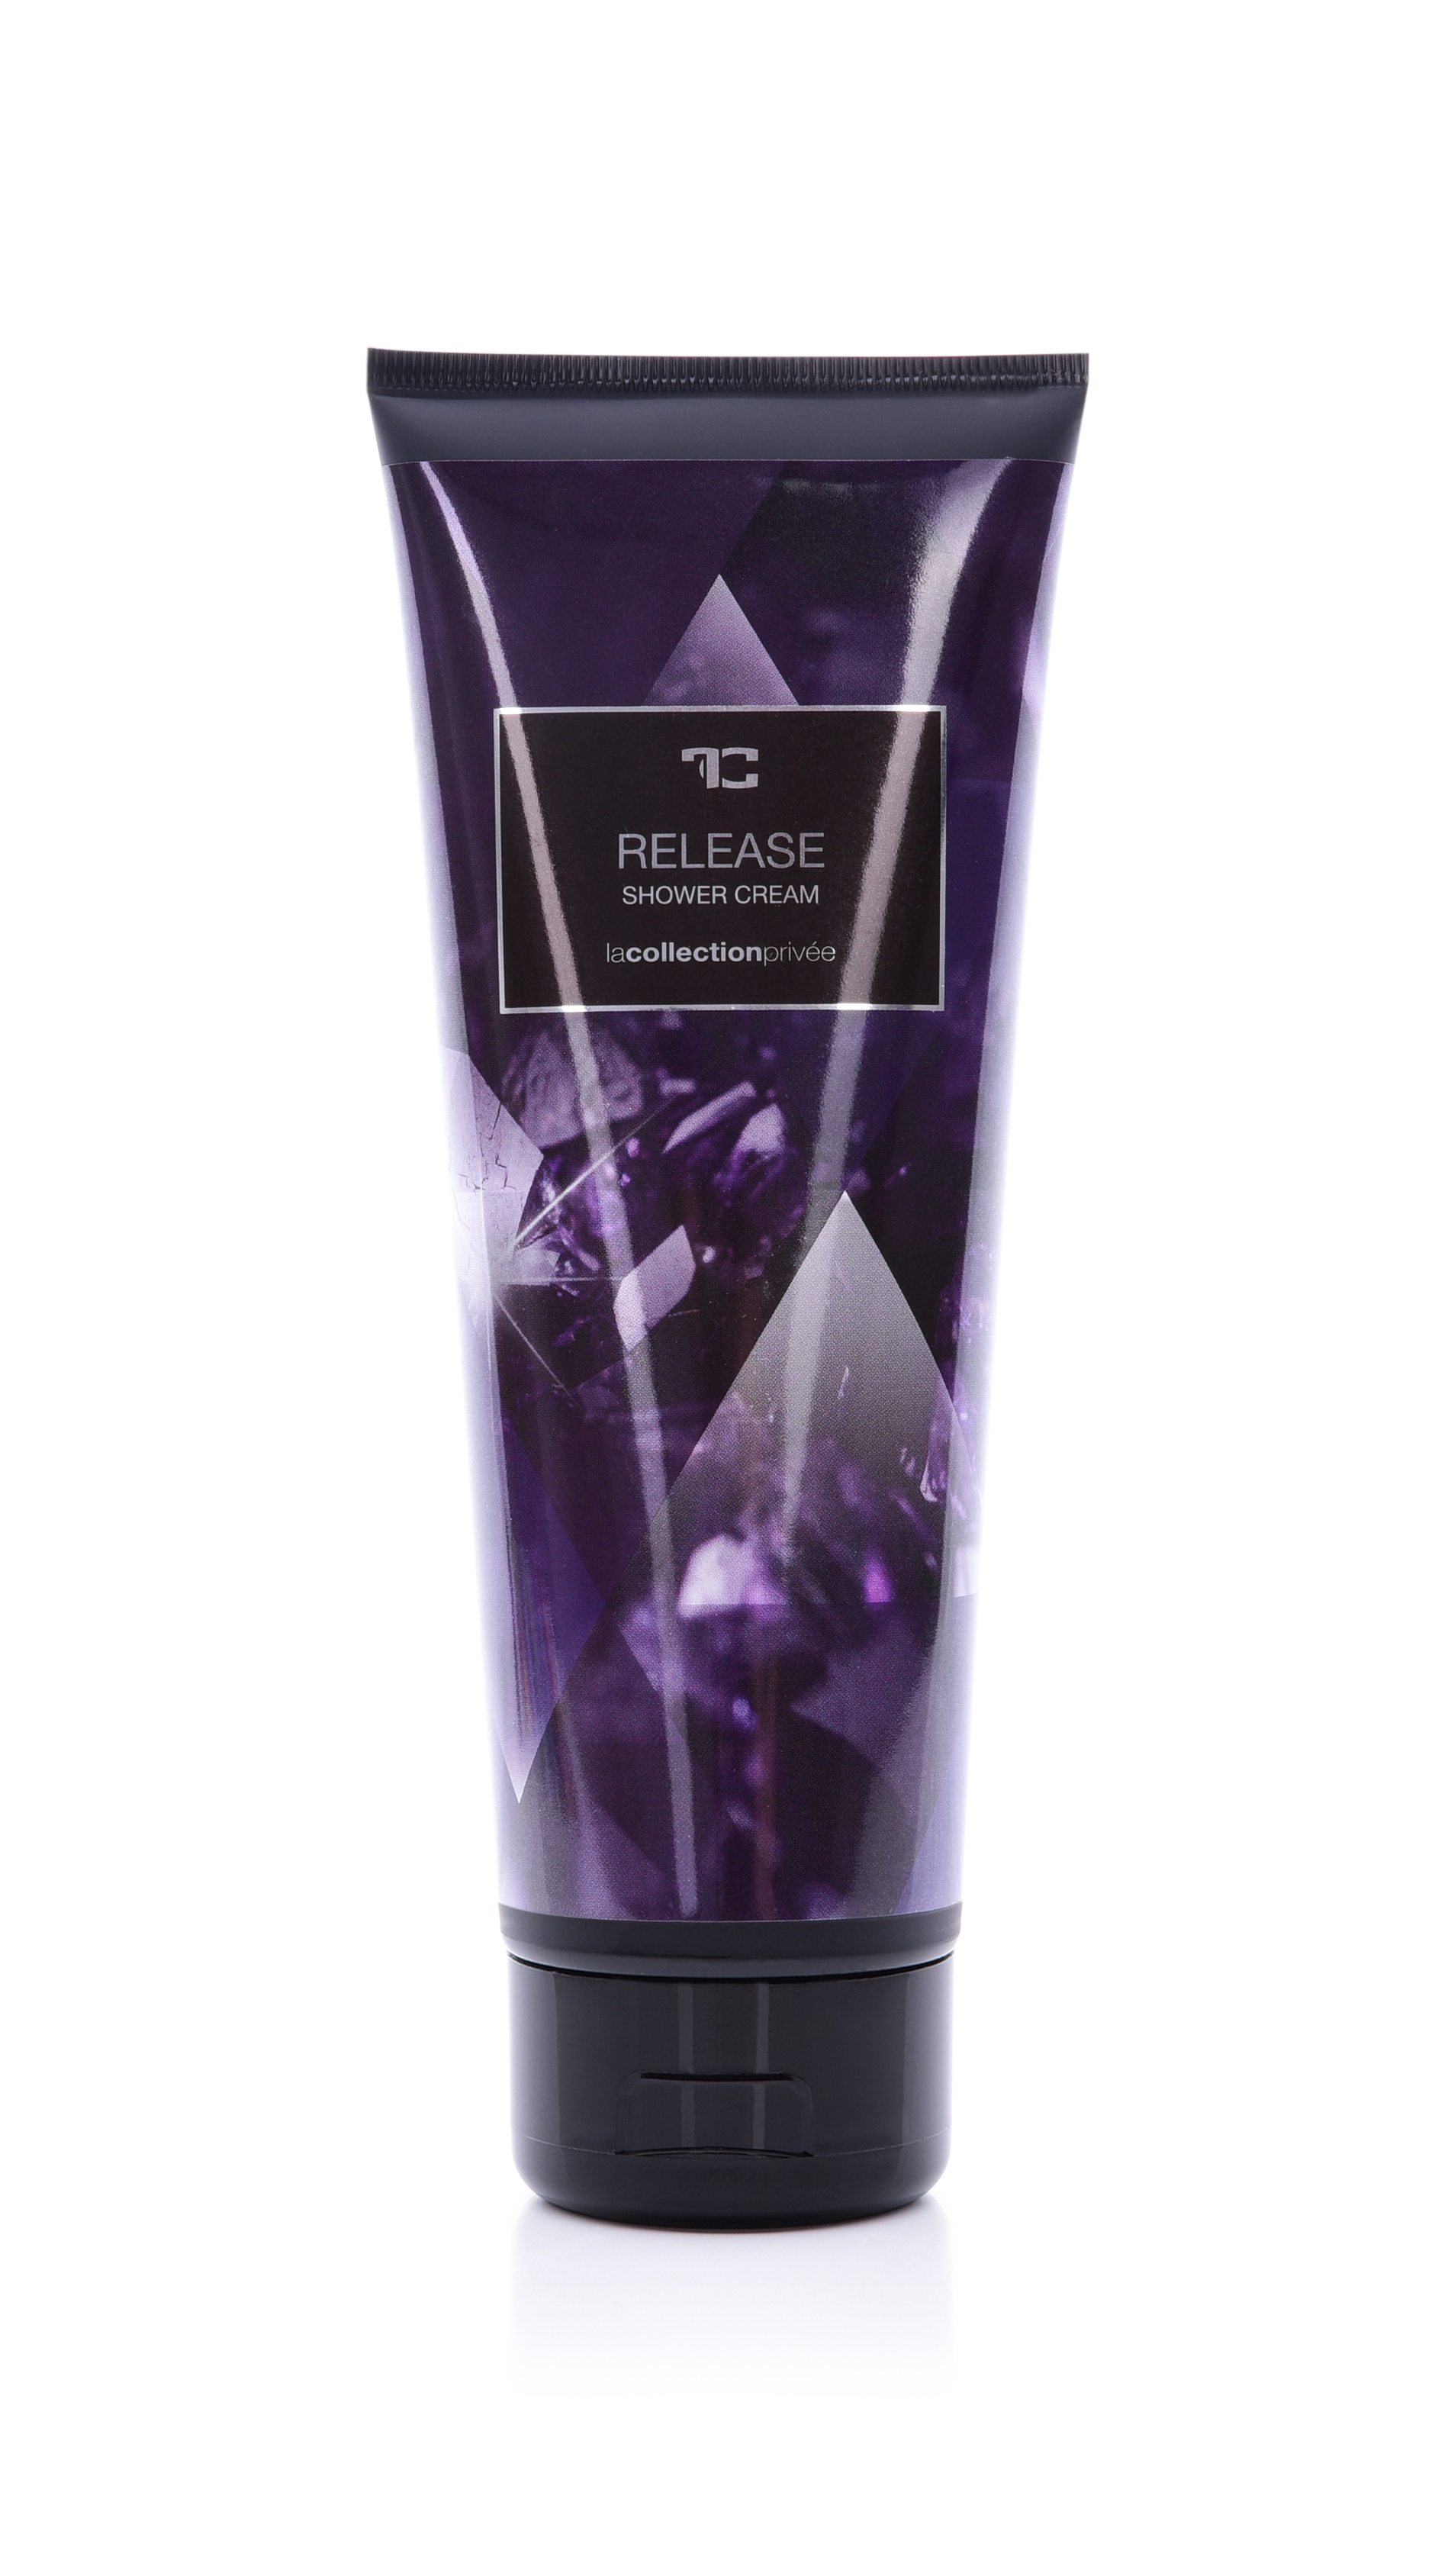 SHOWER CREAM 200 ml release LA COLLECTION PRIVÉE